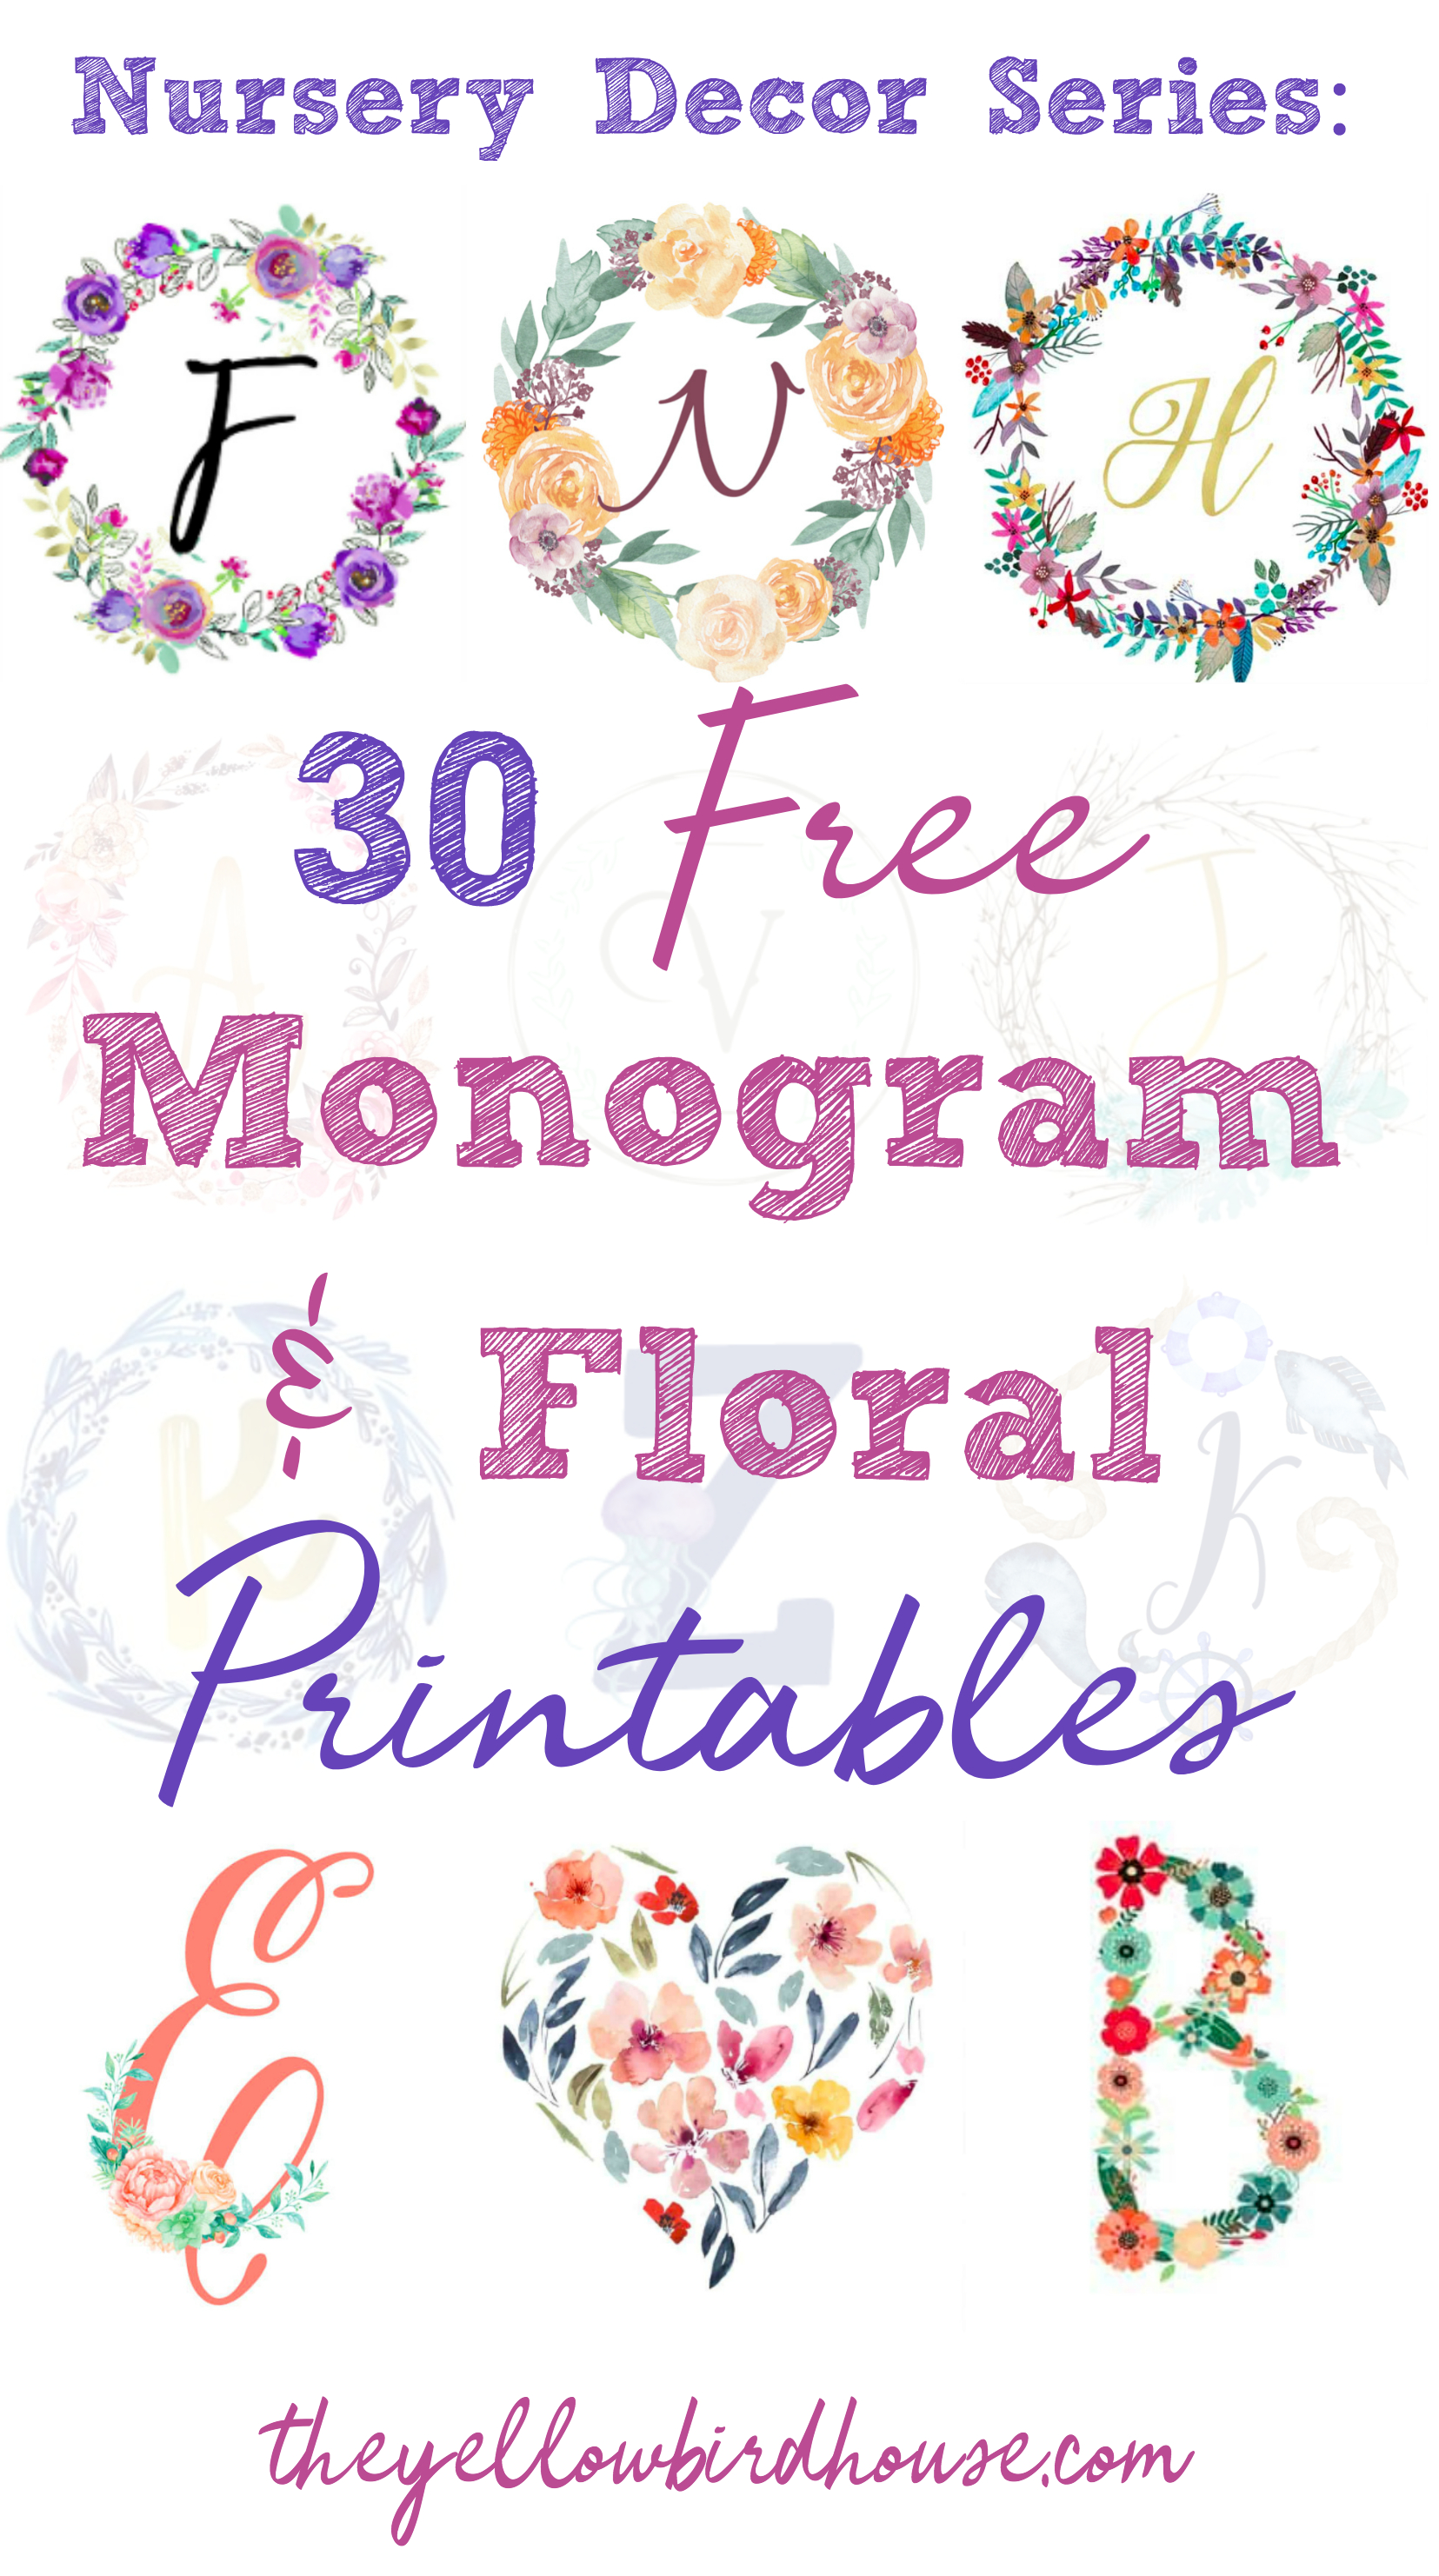 Nursery Decor Series: 30 Free Monogram Printables - Free Printable Monogram